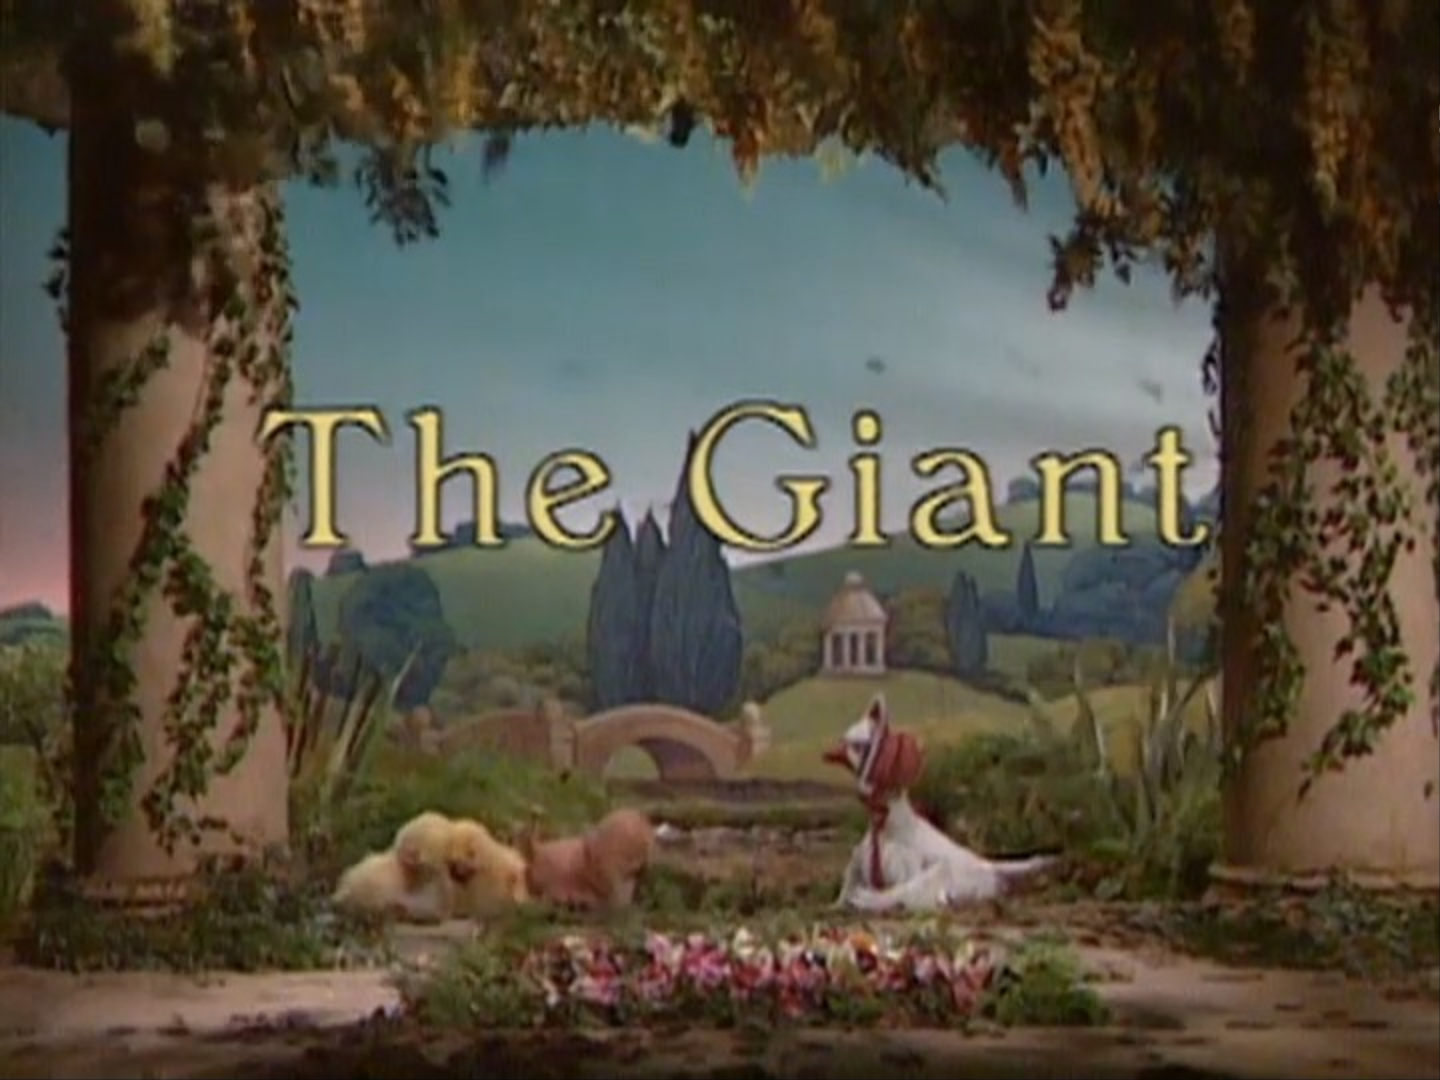 Episode 33: The Giant